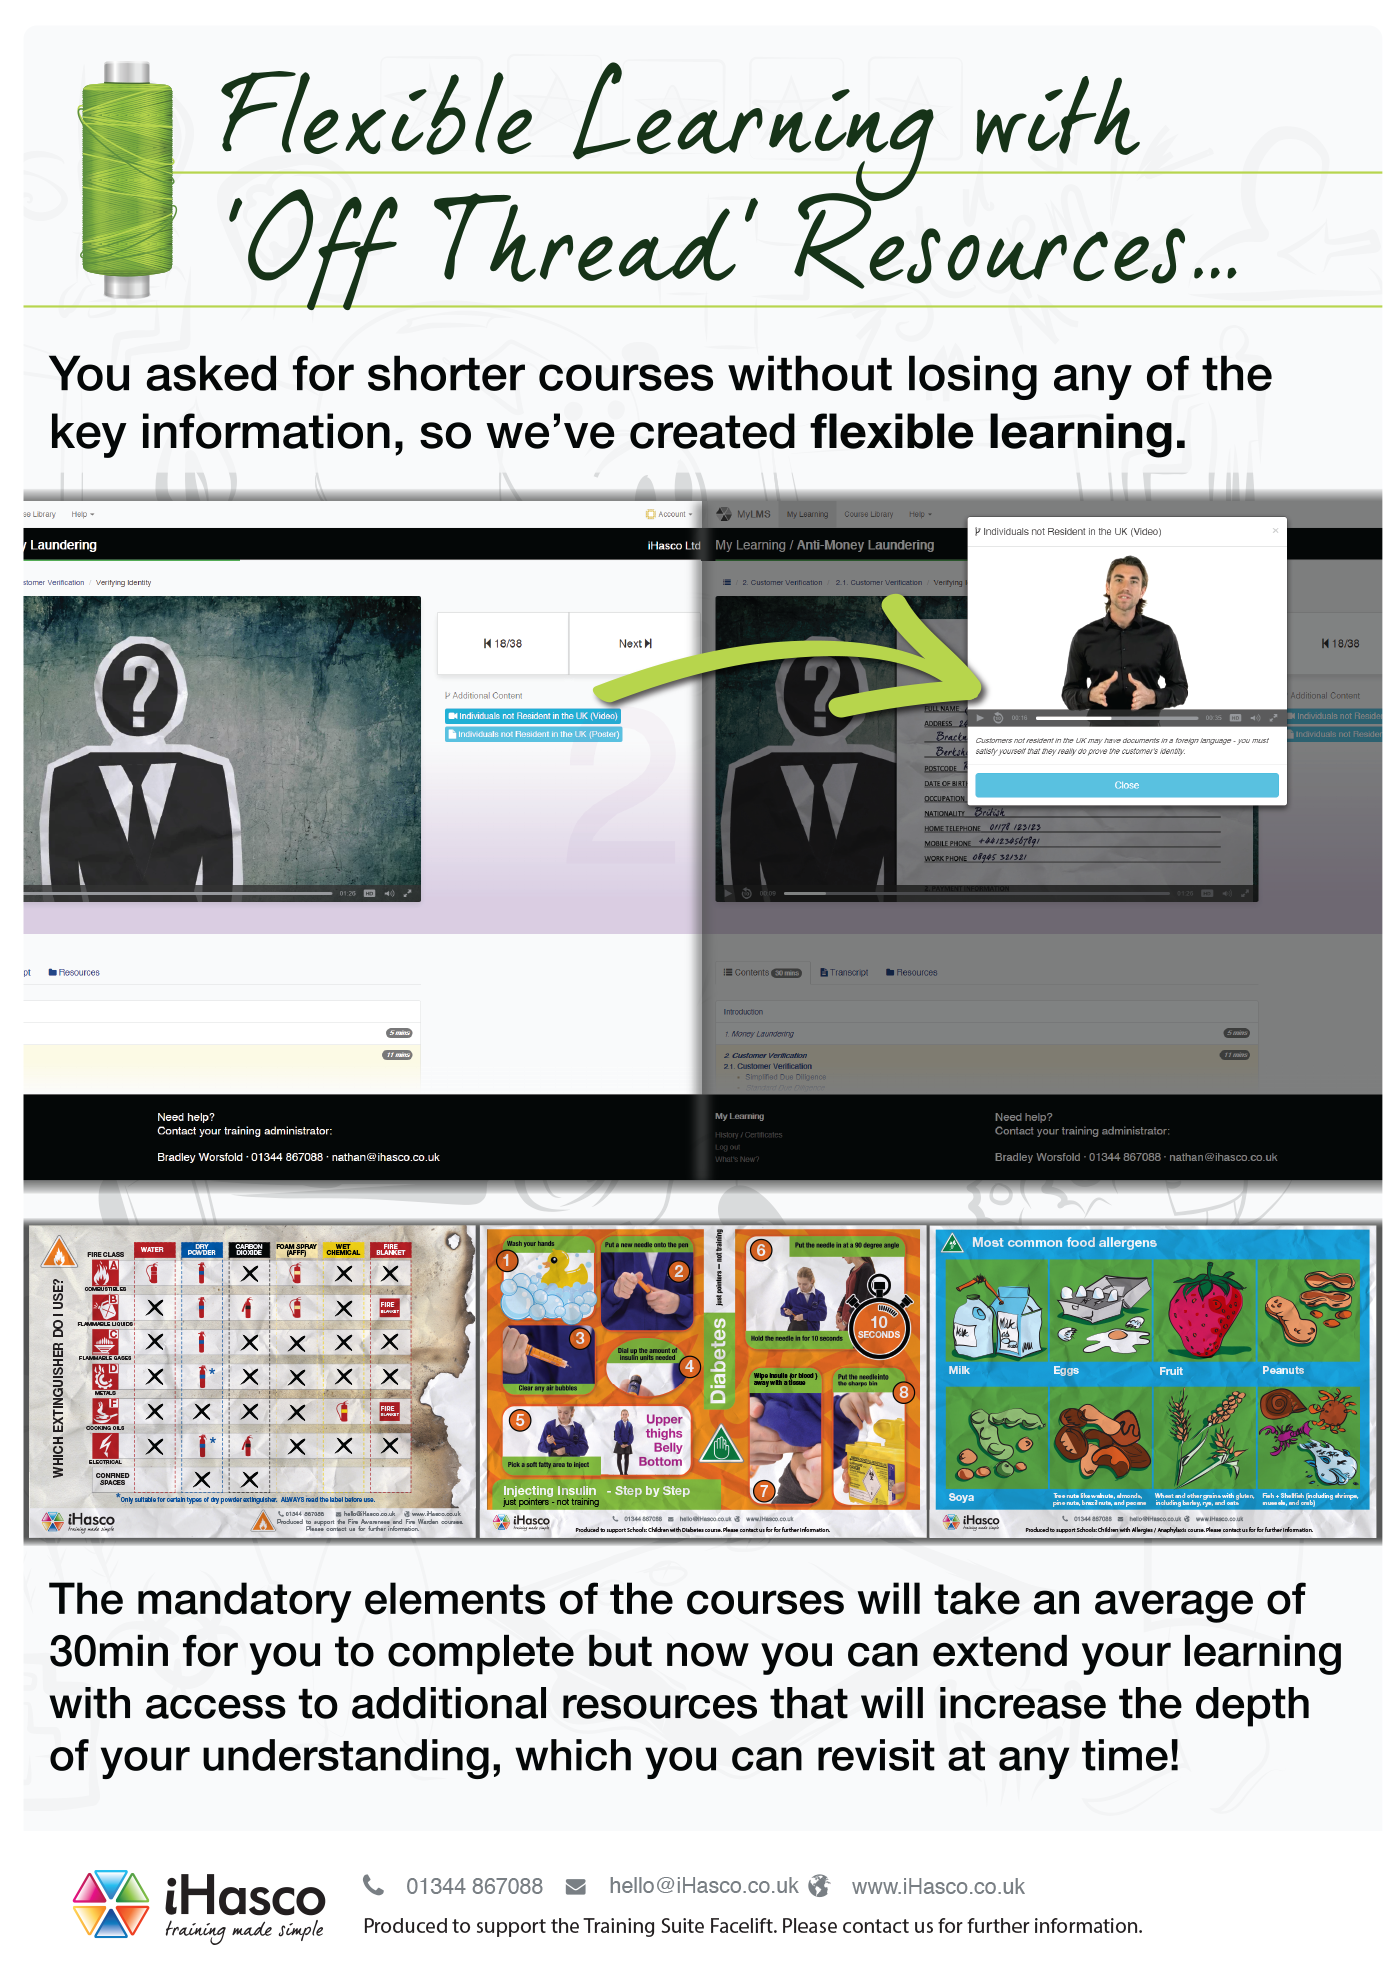 You asked for shorter courses without losing any of the key information, so we've created flexible learning.